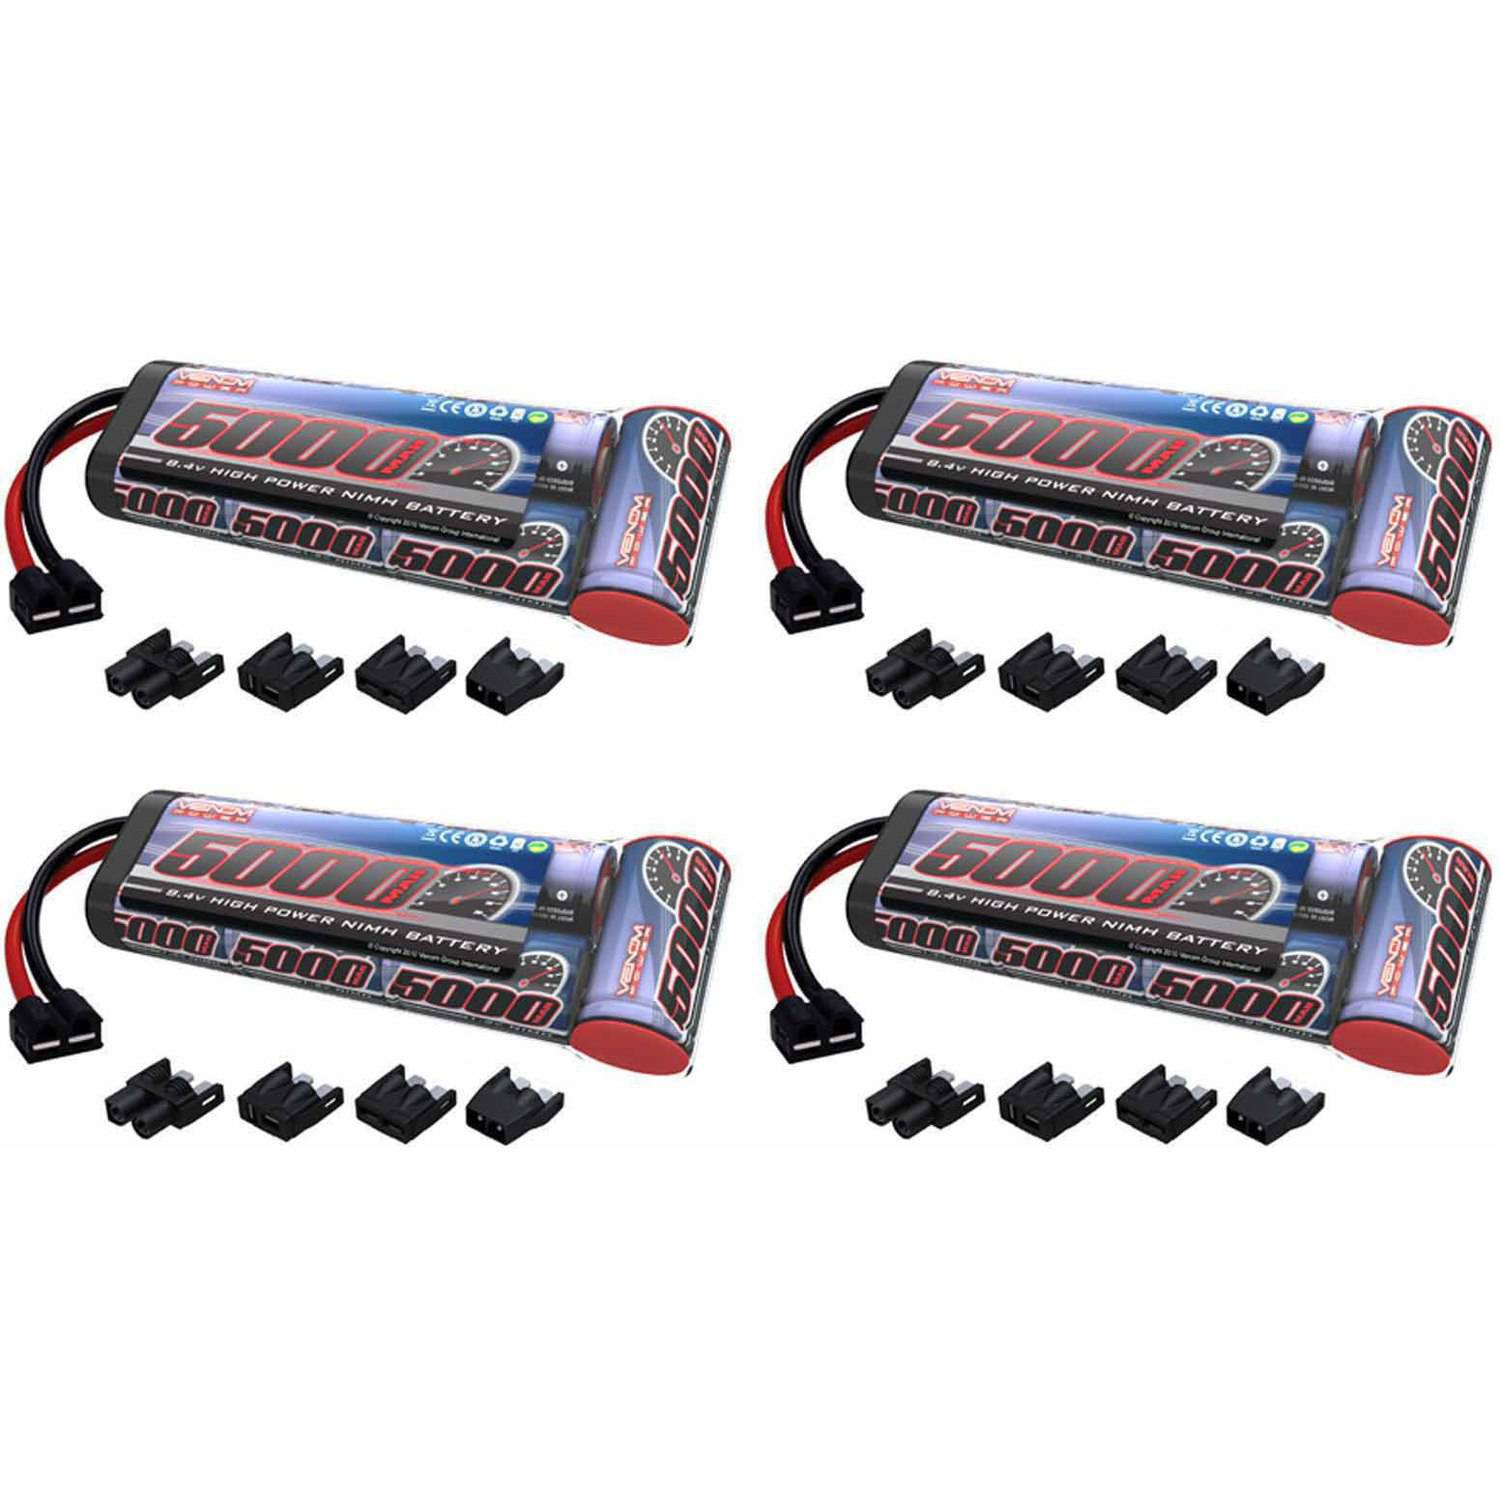 Venom 8.4V 5000mAh 7-Cell NiMH Battery Flat with Universal Plug (EC3/Deans/Traxxas/Tamiya) x4 Packs